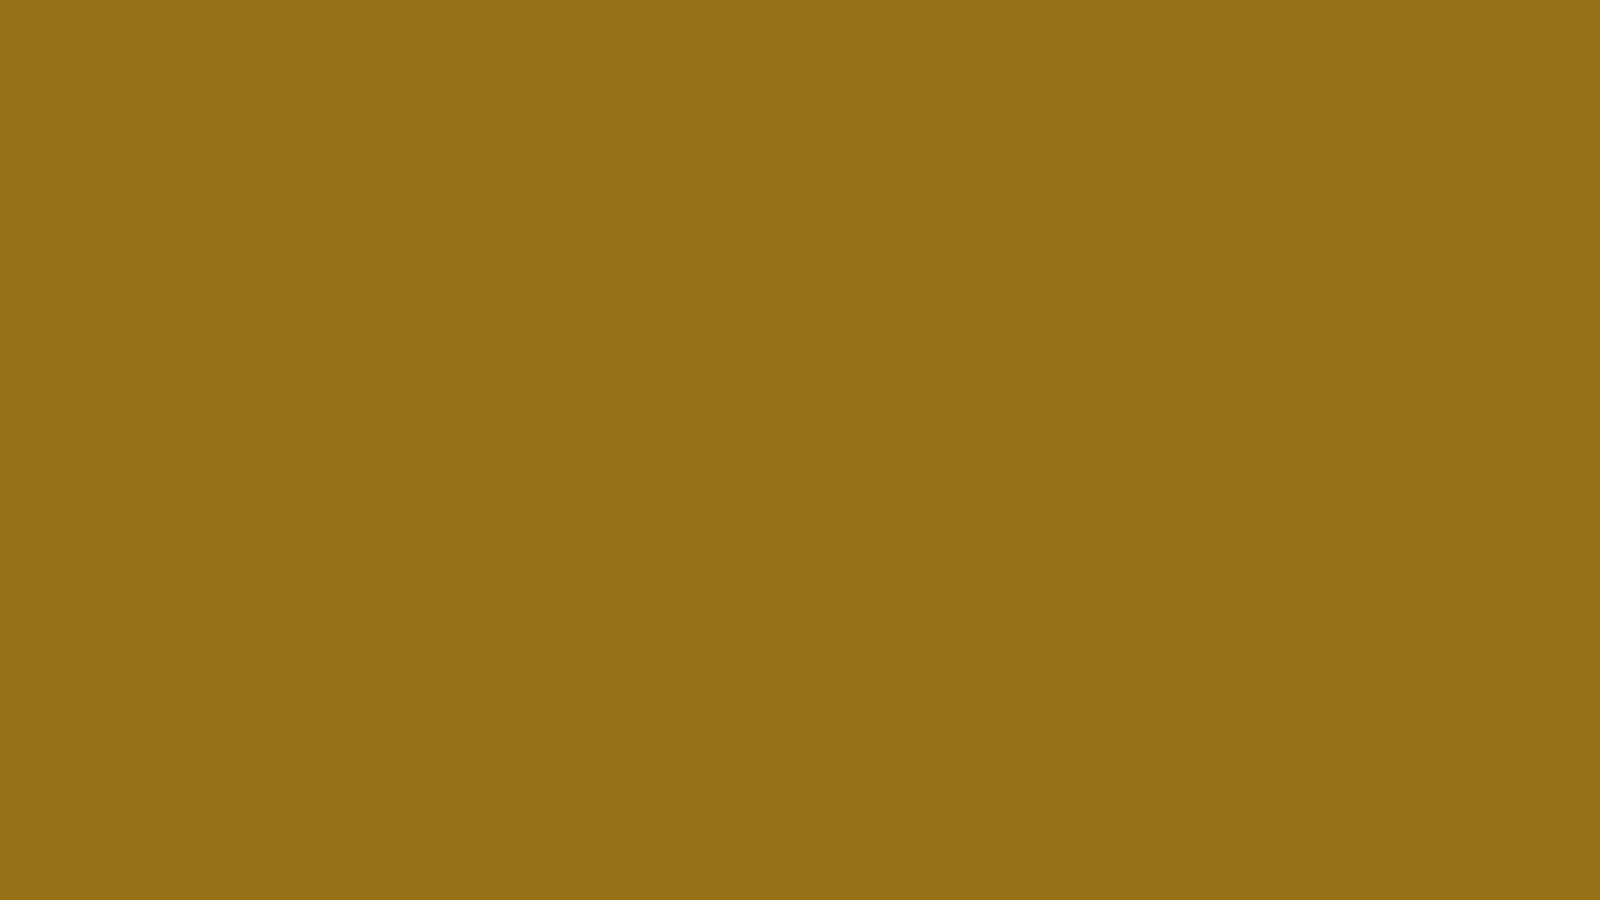 1600x900 Drab Solid Color Background